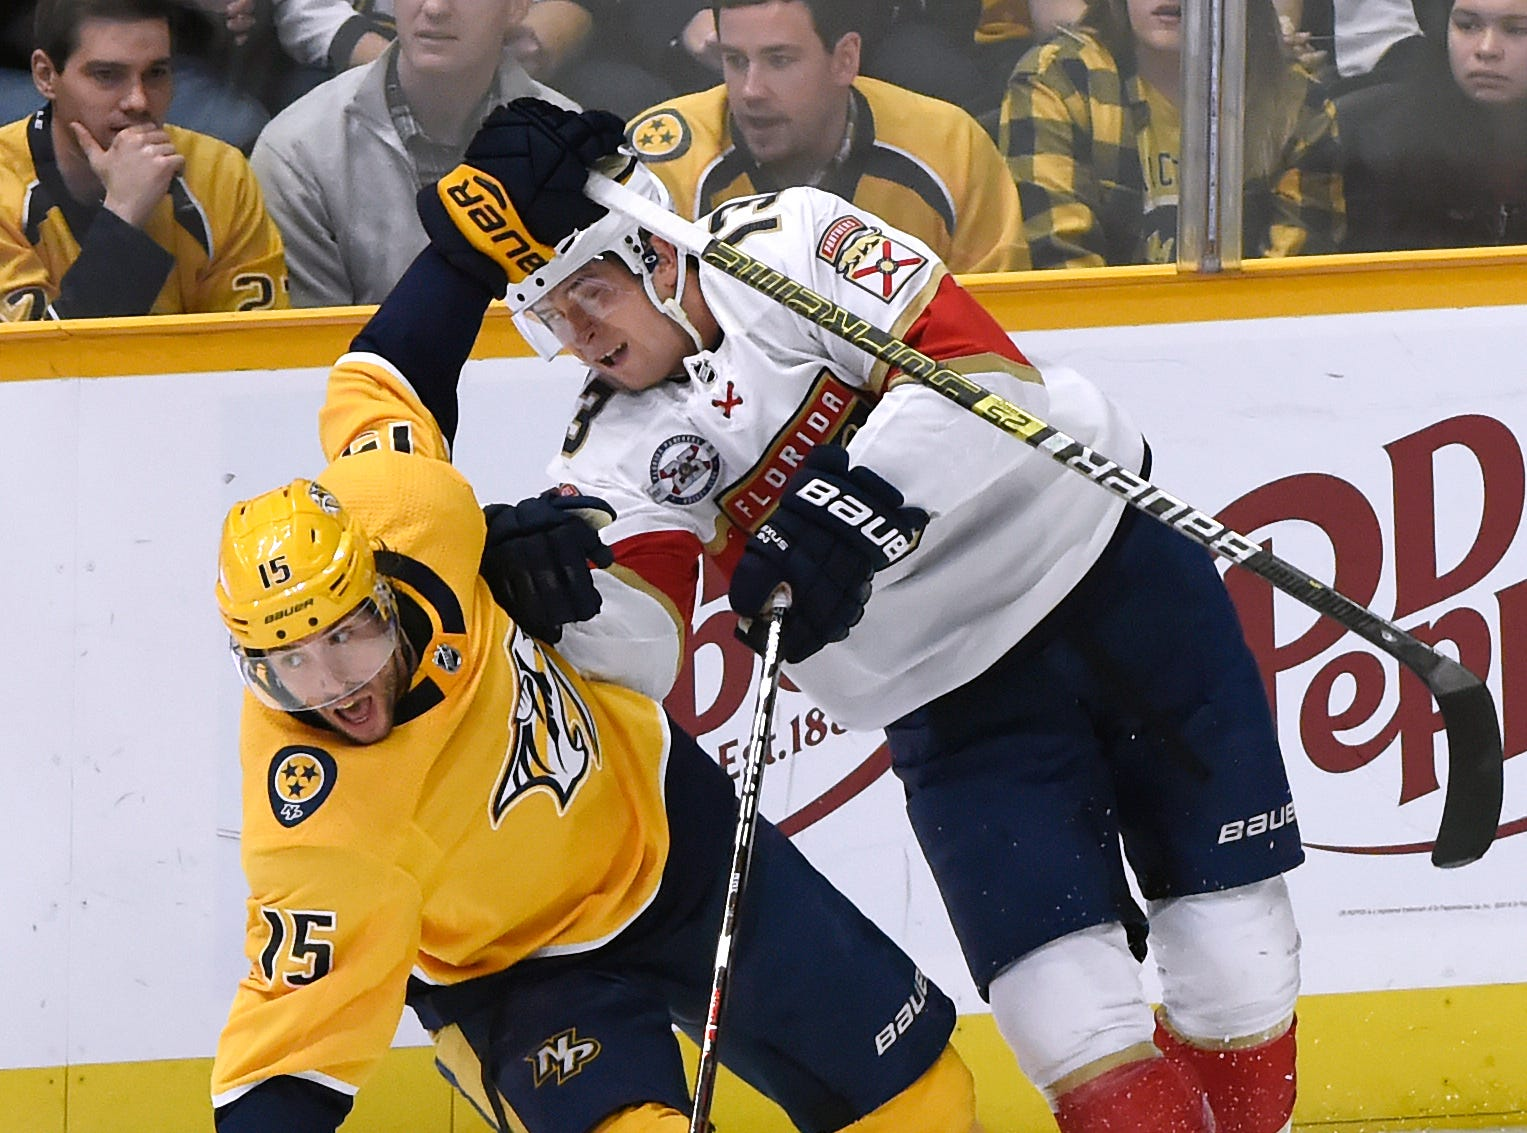 Florida Panthers defenseman Mark Pysyk (13) collides with Nashville Predators right wing Craig Smith (15) during the first period of an NHL hockey game Saturday, Jan. 19, 2019, in Nashville, Tenn.